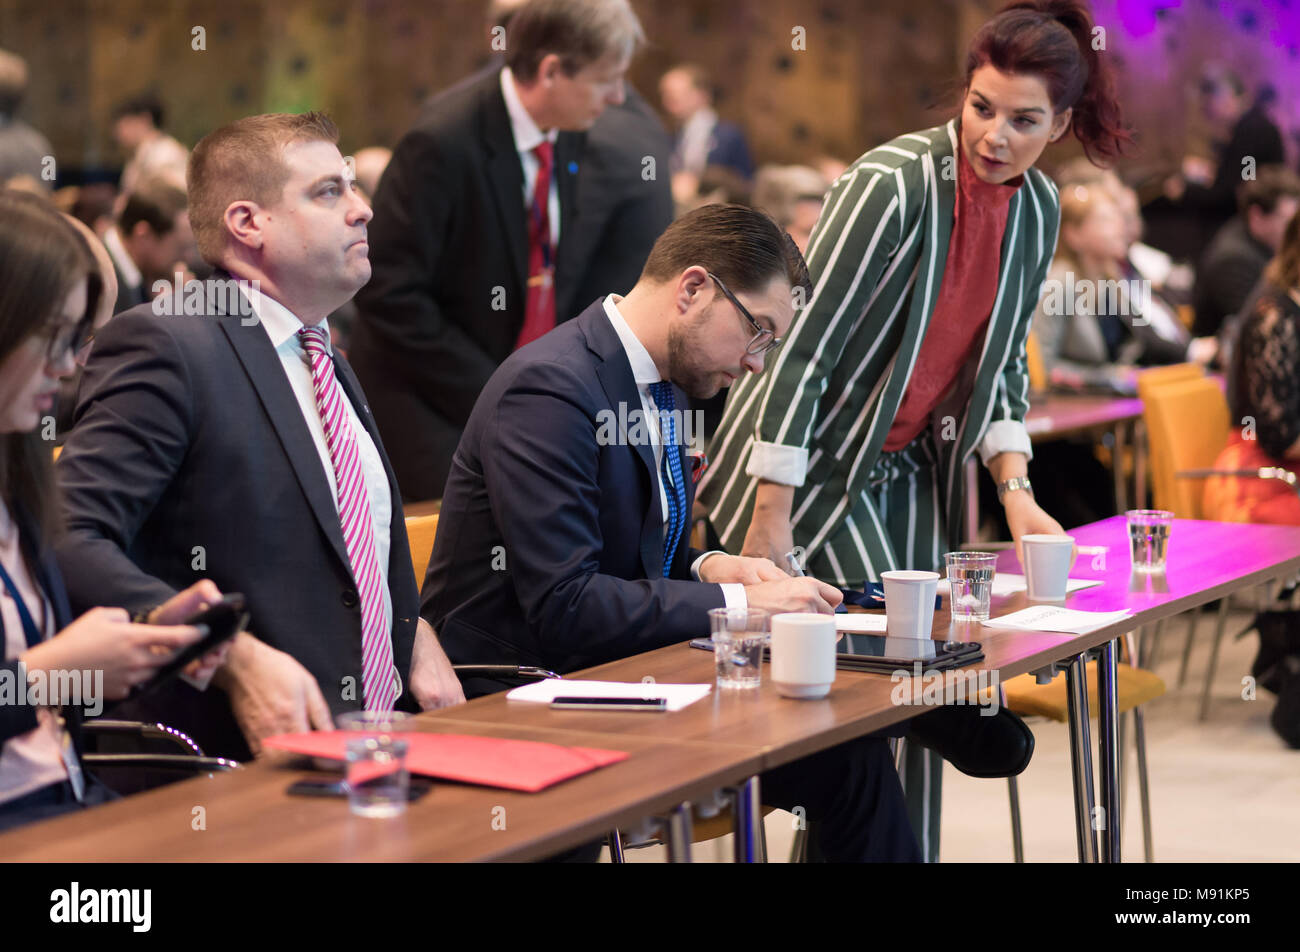 Stockholm, Sweden, March 17, 2018. Sweden Democrats (SD) Election Conference 2018. Political Secretary, Mikael Eriksson, Party Leader Jimmie Akesson,  - Stock Image